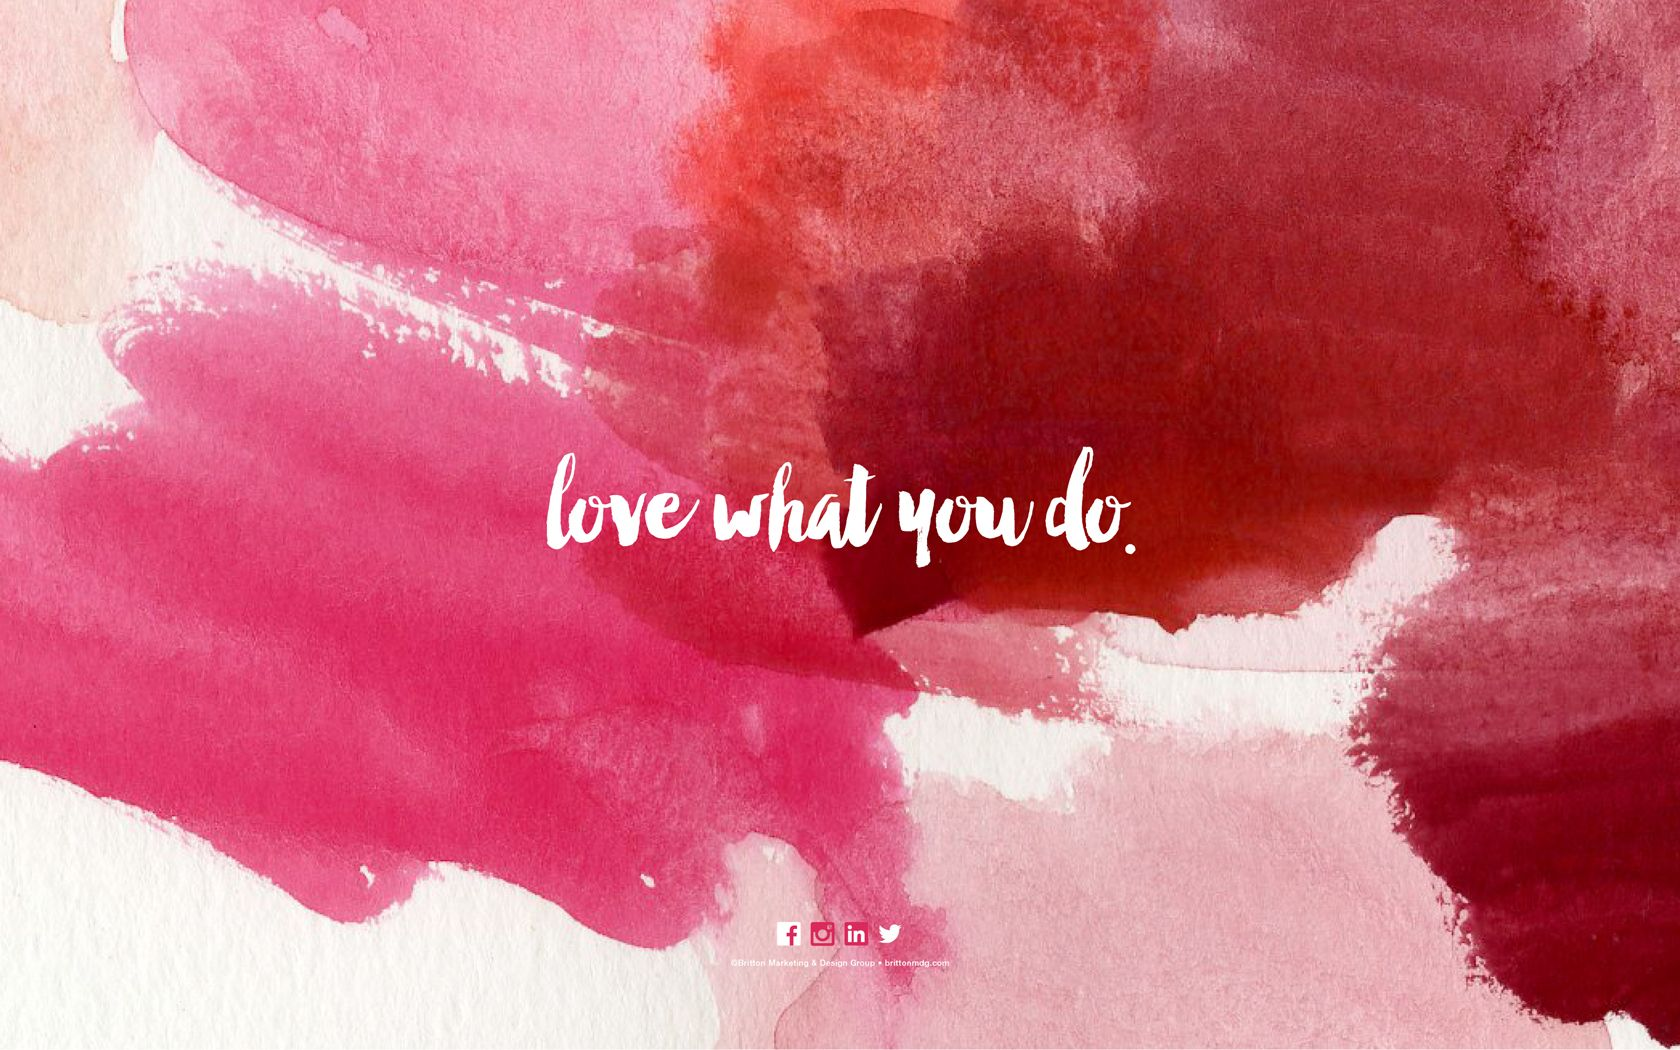 Love Your Wallpaper : rifle paper co desktop wallpaper design. Pinterest ...